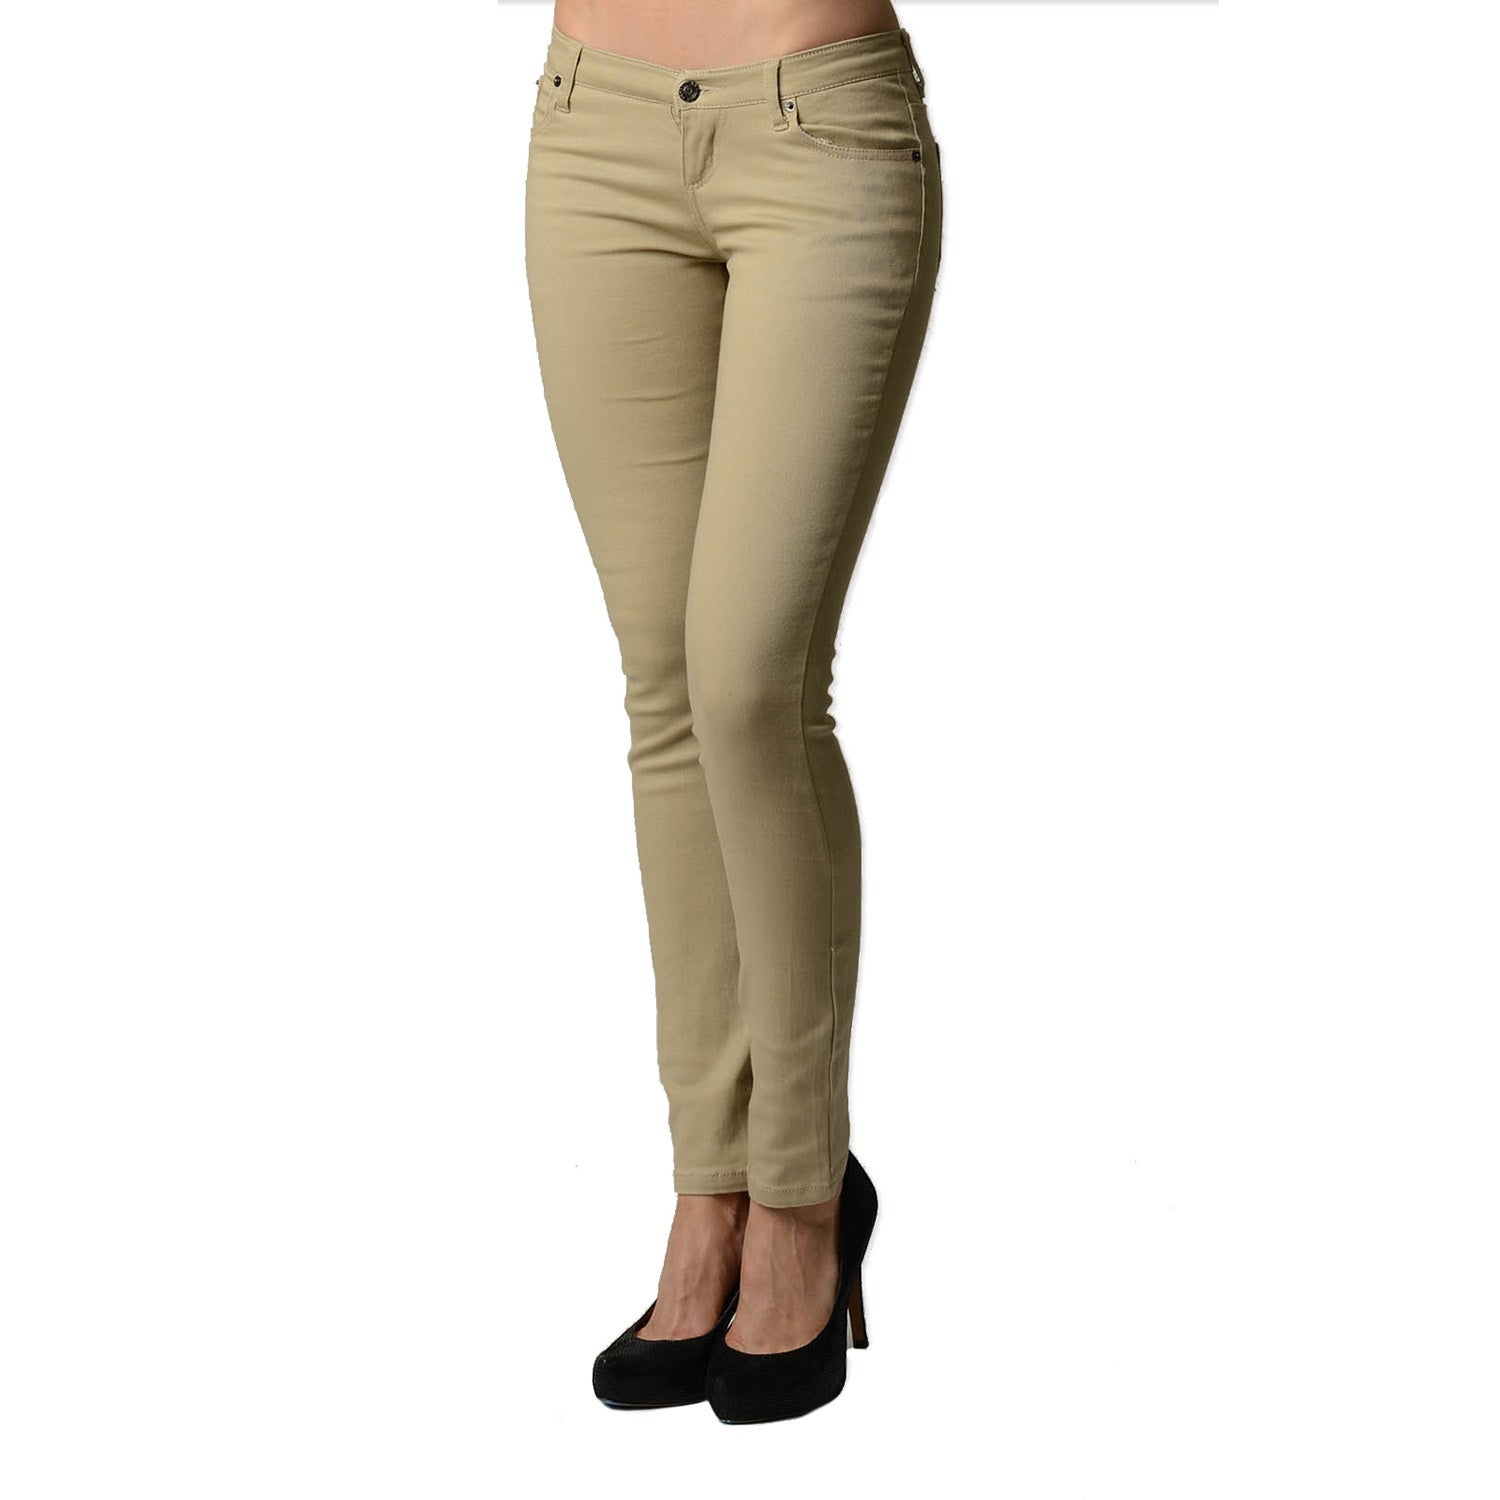 0e59a4064542ce Shop Dinamit Juniors 5-Pocket Skinny Uniform Pant - On Sale - Free Shipping  On Orders Over $45 - Overstock - 11102390